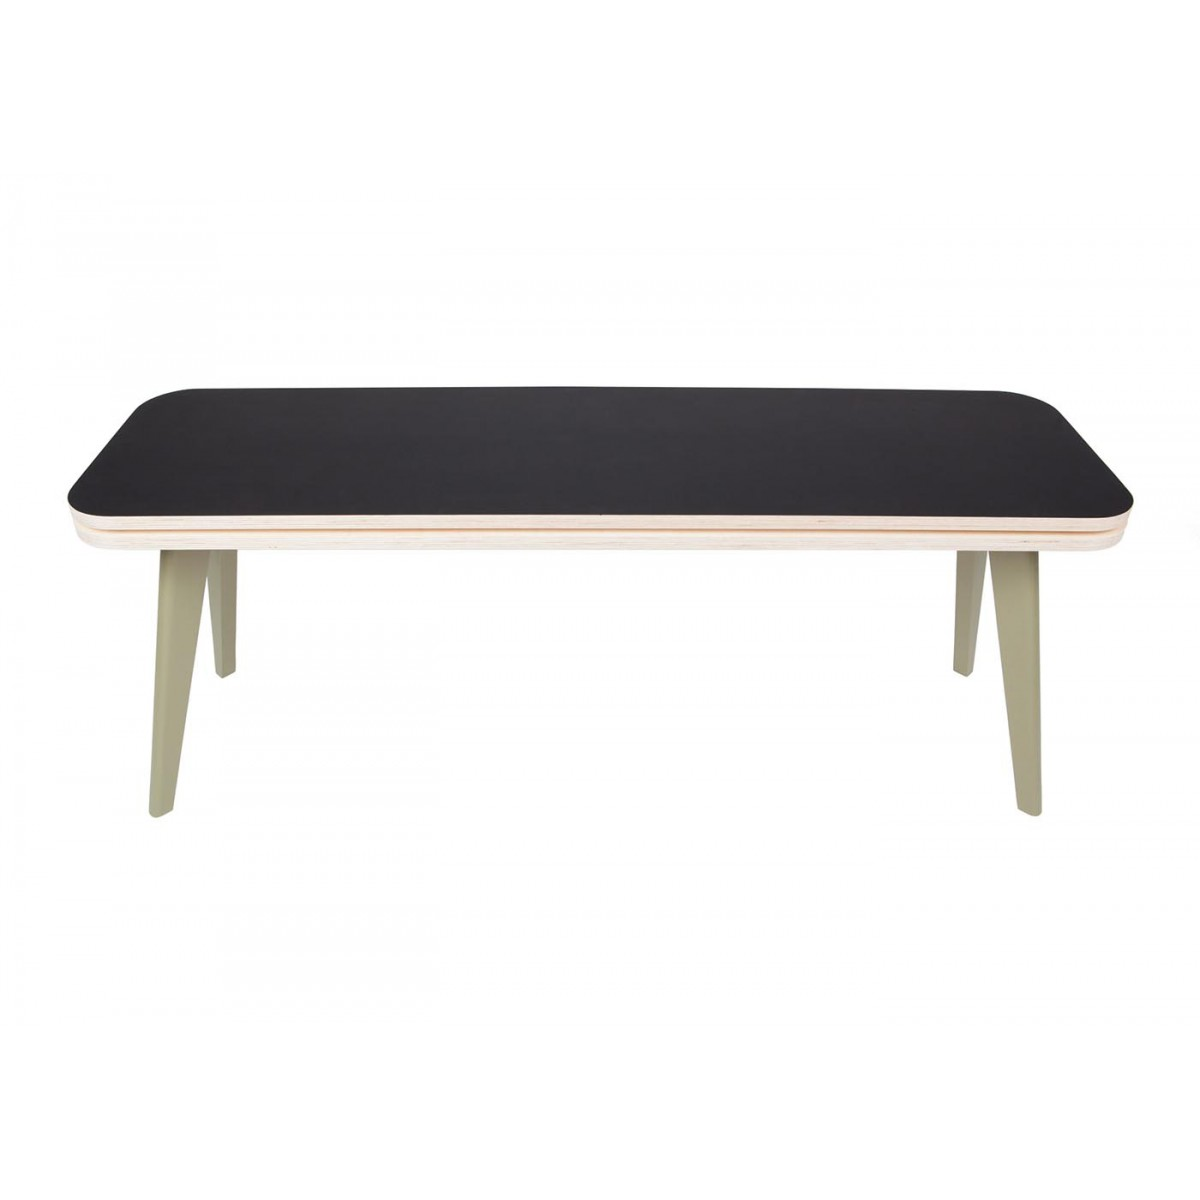 Banc en bois deisgn scandinave josyan sign blomkal Design interieur table basse en bois